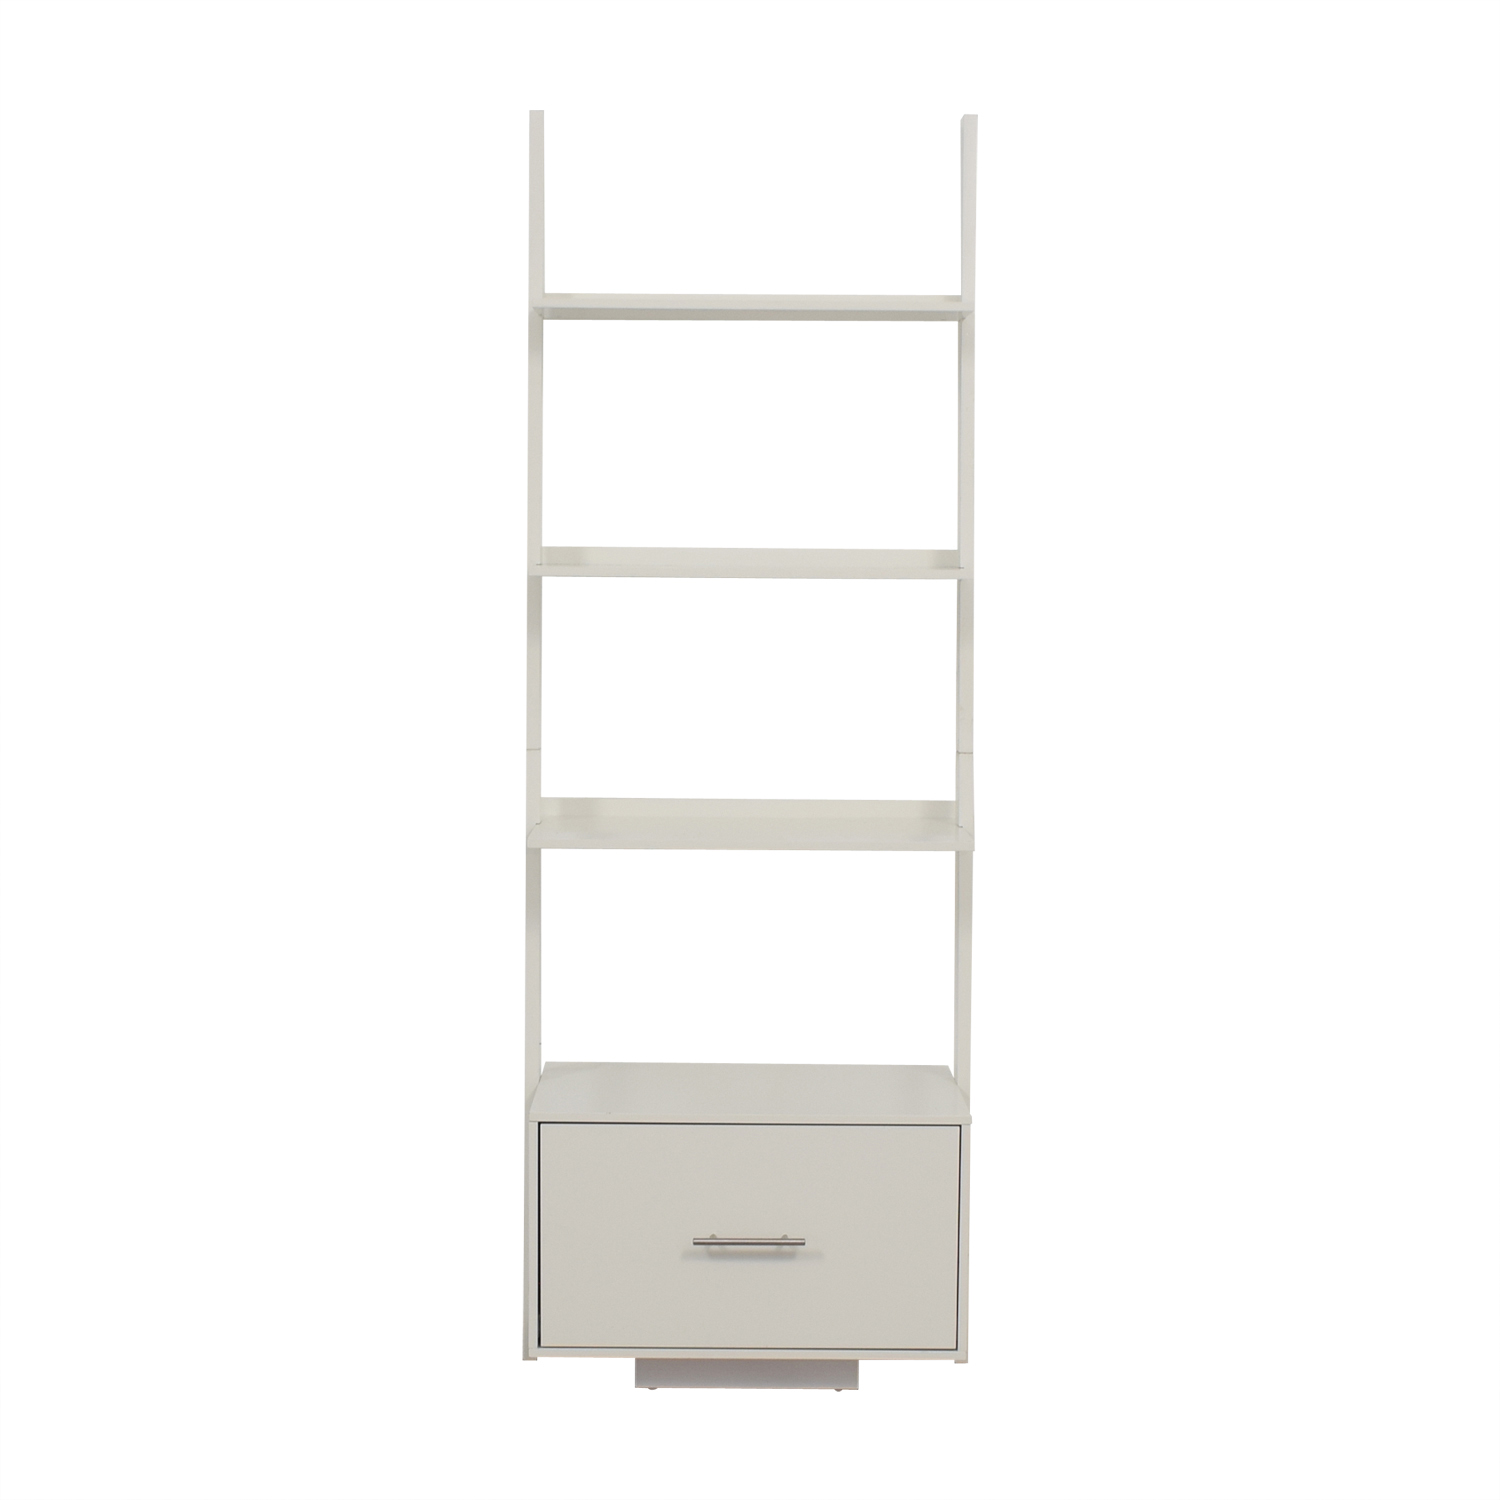 AllModern AllModern White Leaning Bookcase with File Drawer dimensions